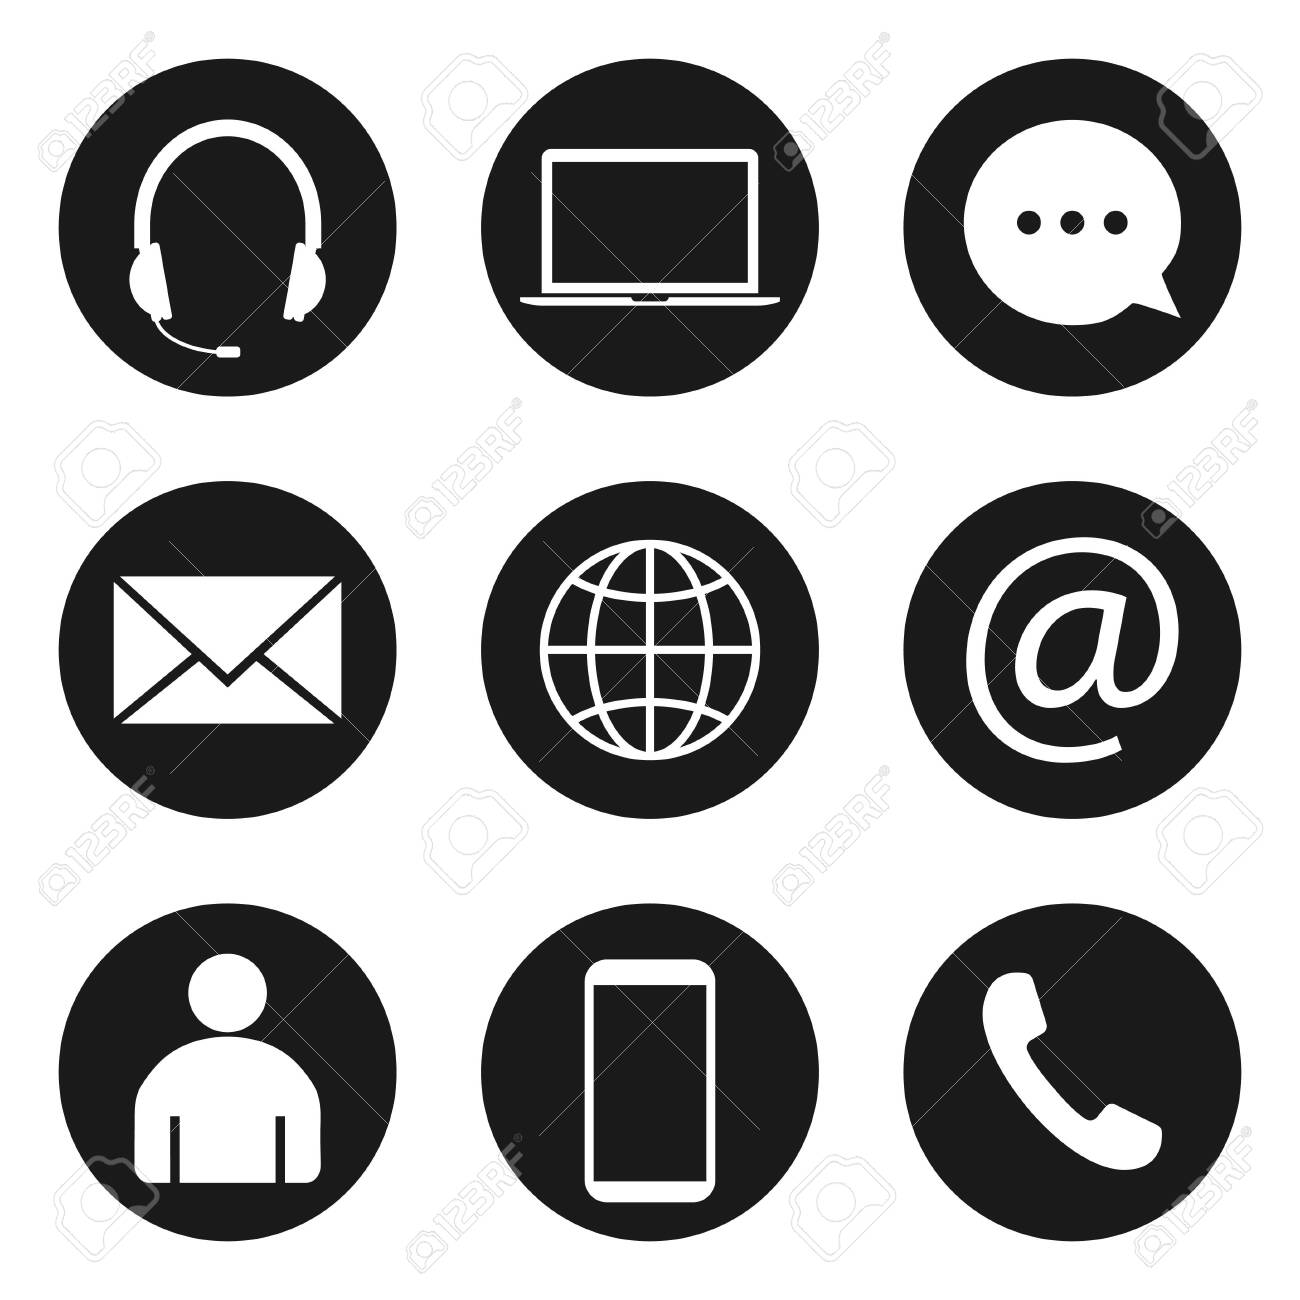 Contact Icon set. Vector illustrations. Flat design. - 138894863